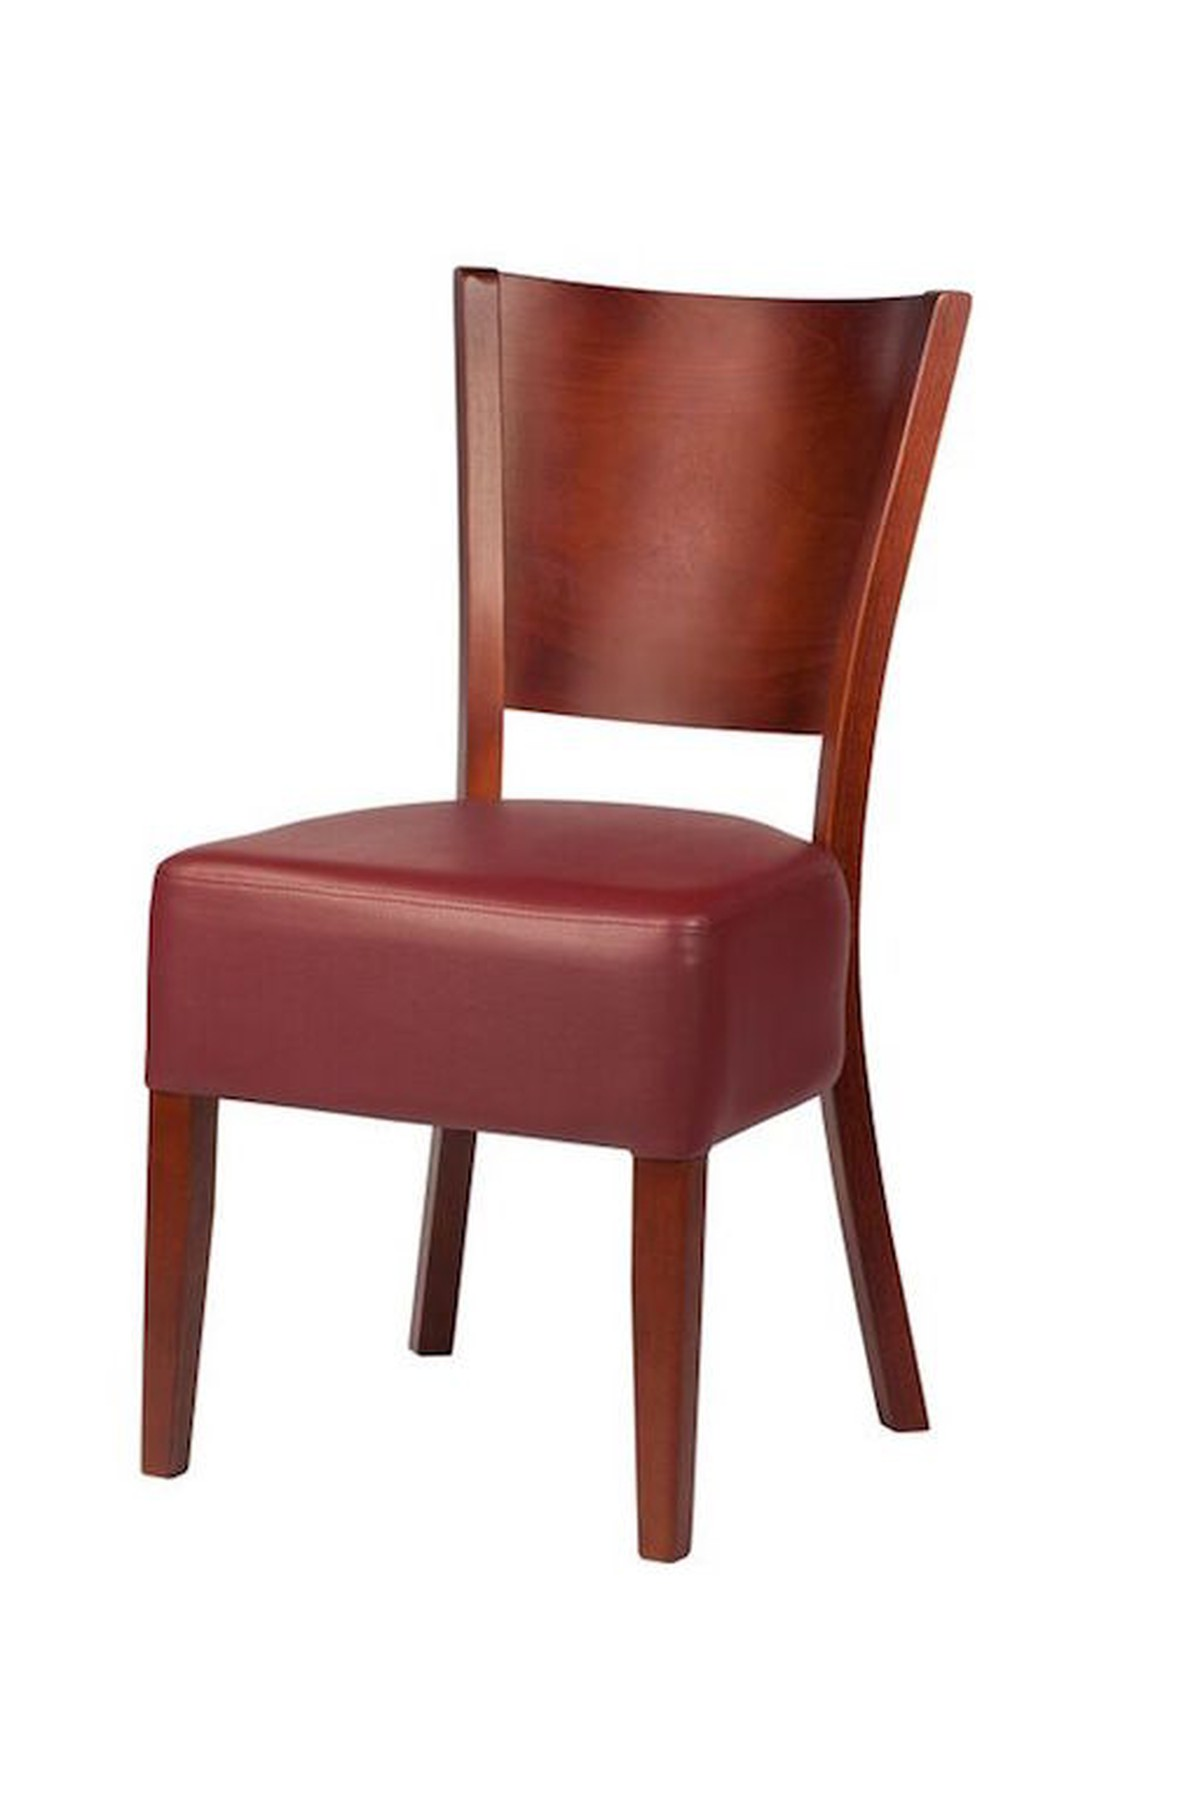 Secondhand hotel furniture dining chairs 140x designer for Leather kitchen chairs for sale